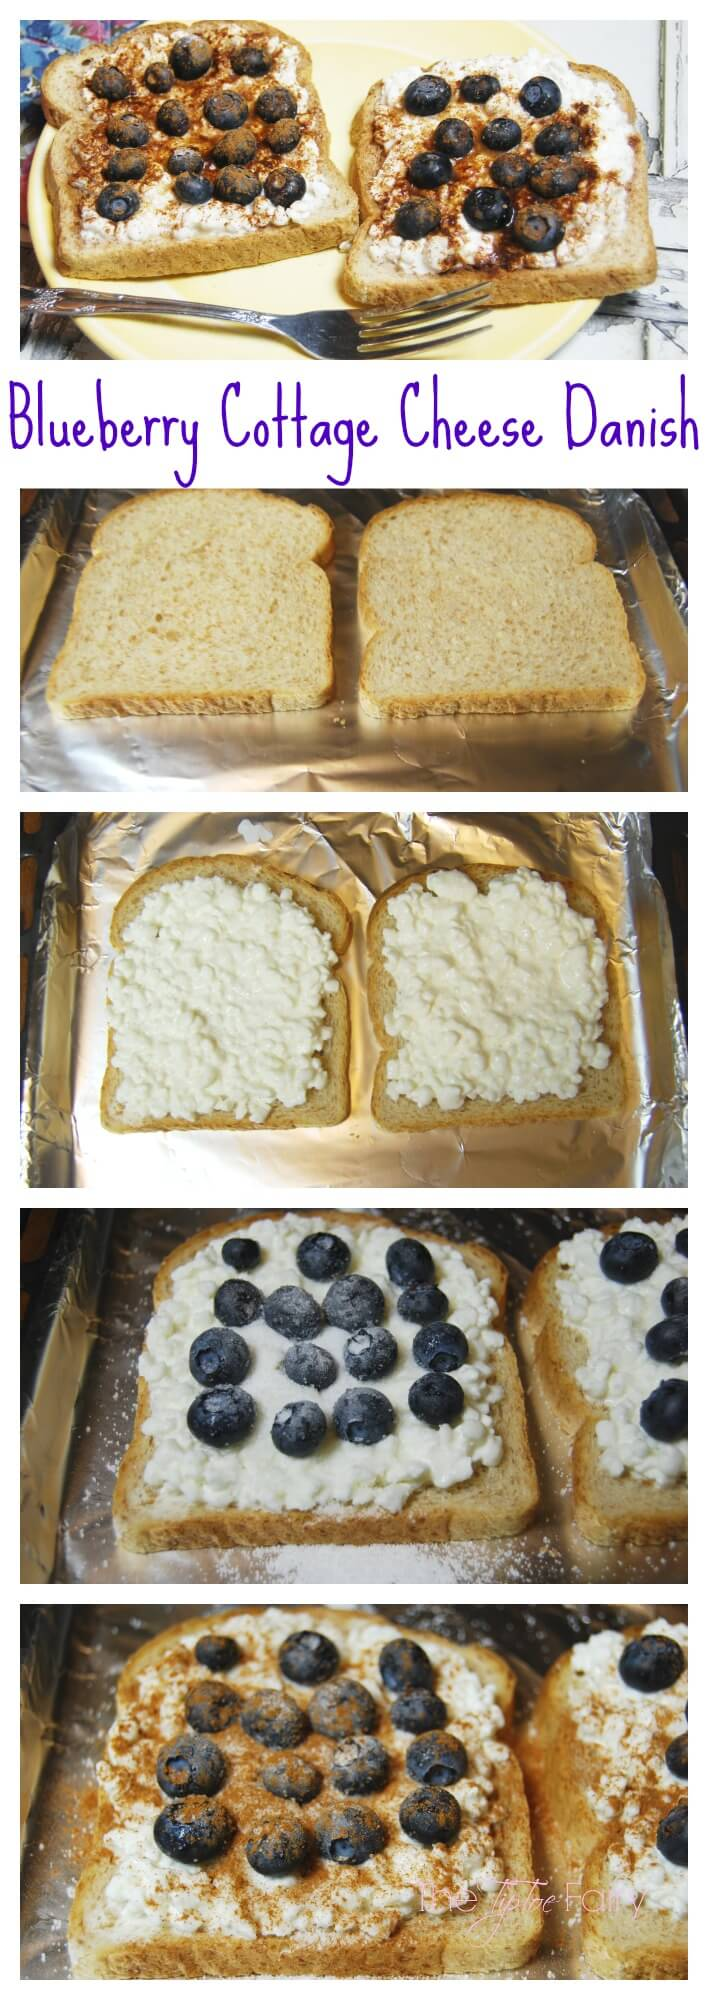 Blueberry Cottage Cheese Danish - a quick and delicious meal to start your New Year's resolution off right. With less than 300 calories for TWO! | The TipToe Fairy #LittleChanges #IC #ad